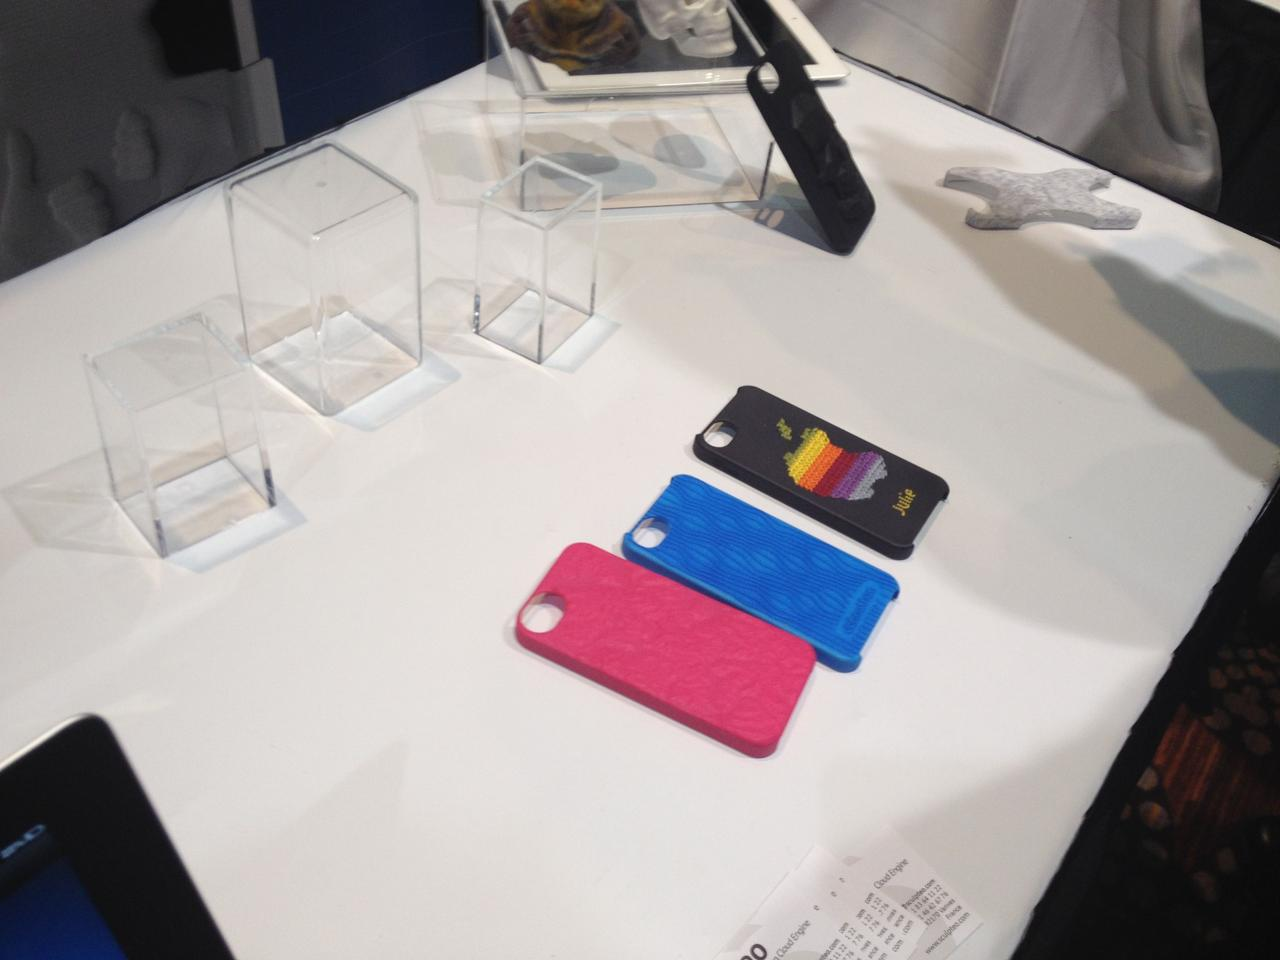 The cases are made of polyamide, built to a tolerance of 0.1mm